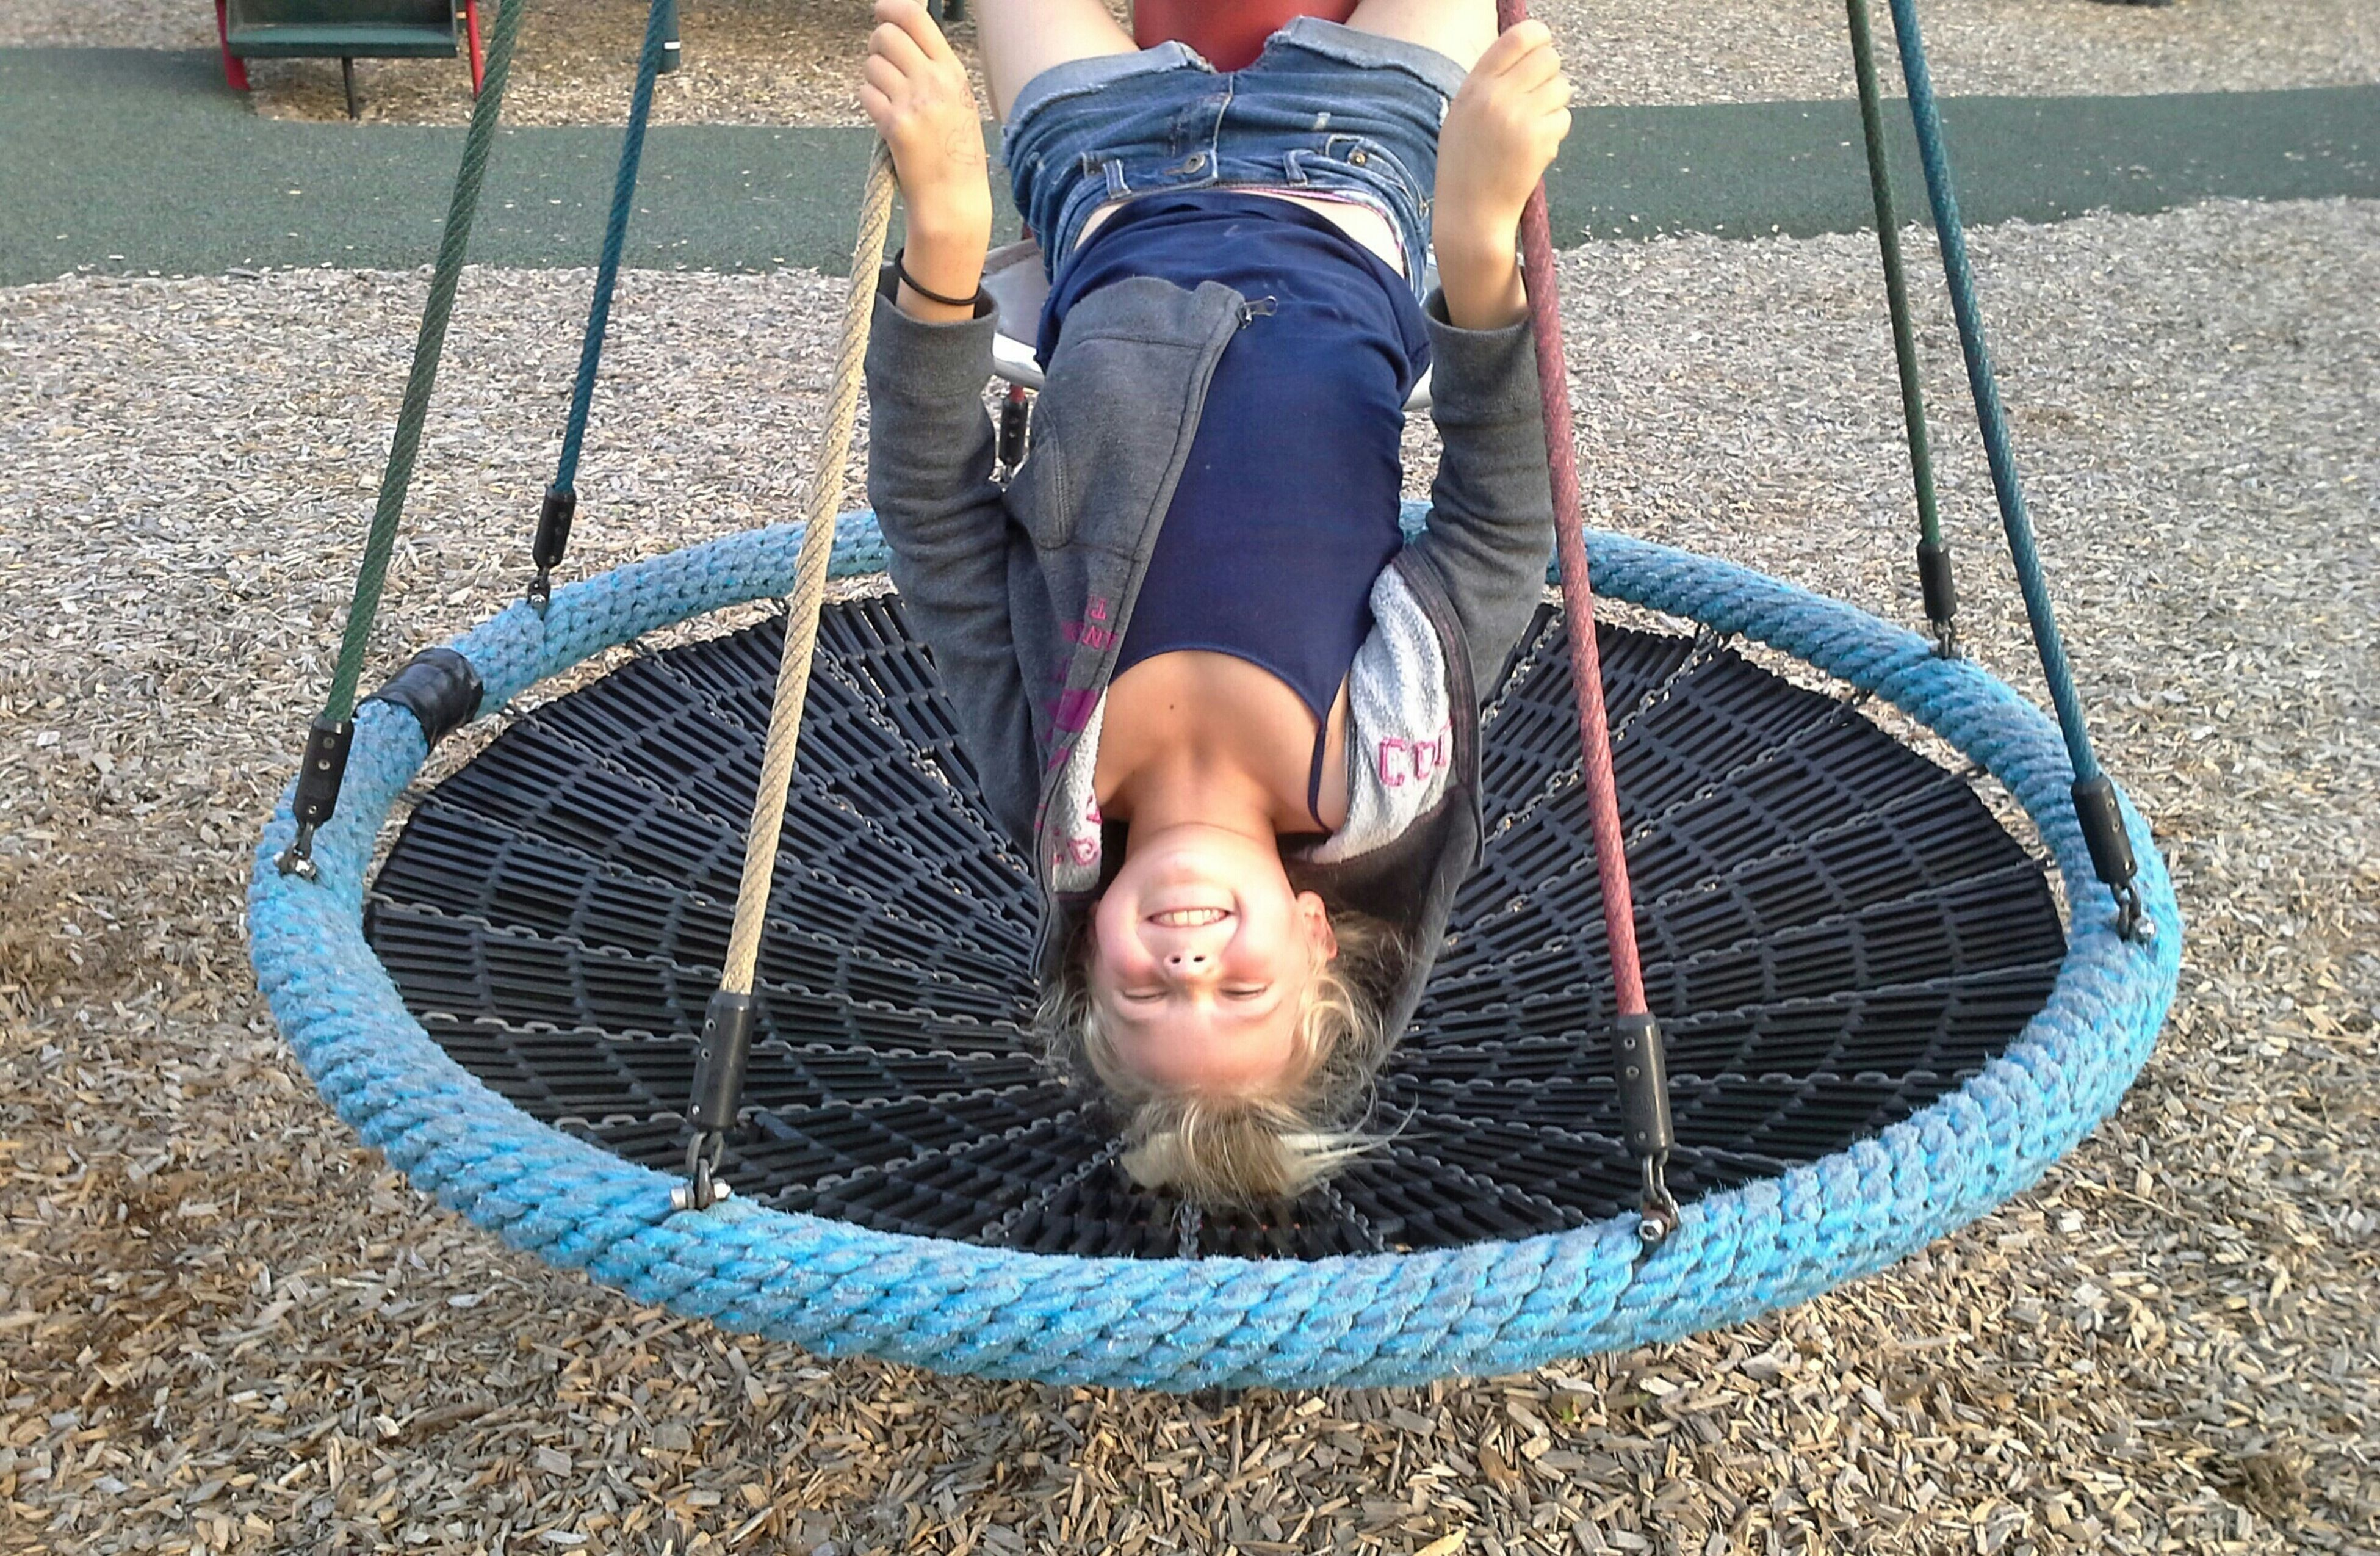 childhood, elementary age, lifestyles, boys, leisure activity, innocence, girls, high angle view, casual clothing, cute, playful, full length, person, playing, playground, standing, day, outdoors